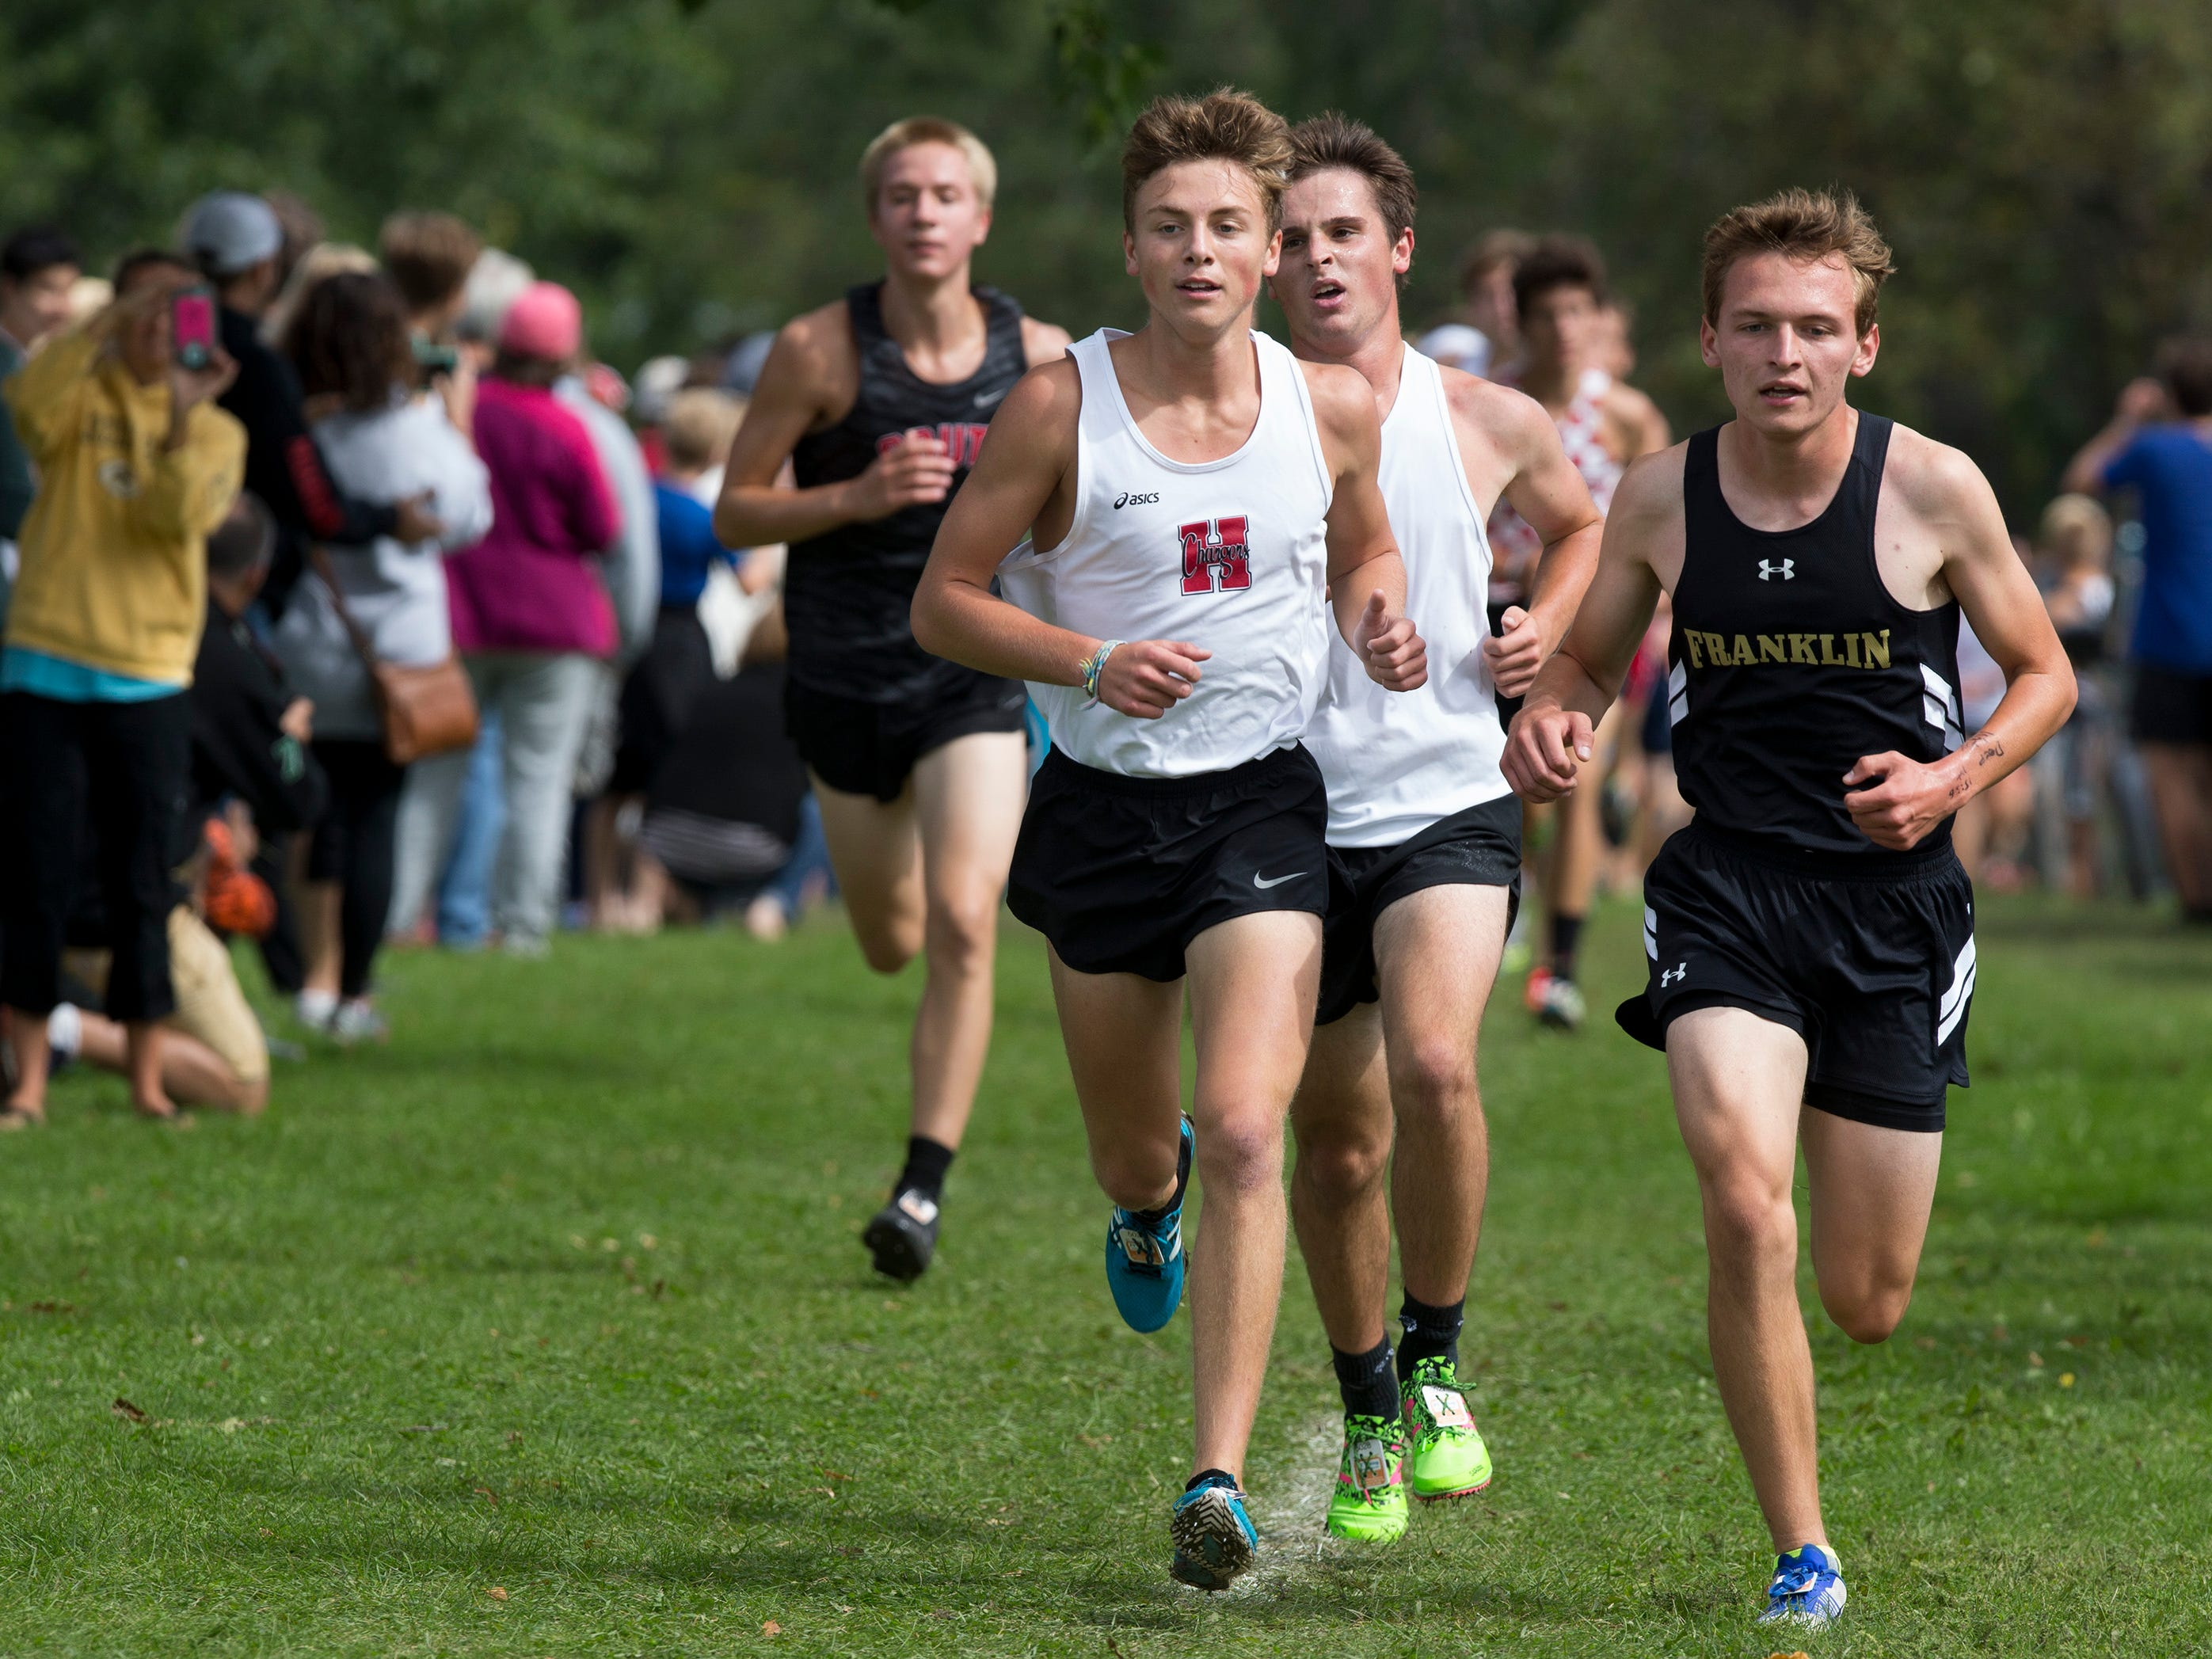 Sussex Hamilton's Gavin Kuhlenbeck (center) and Franklin's Bryce Tome (right) run step in step in the first half of the Menomonee Falls Matt Hadler Cross Country Invitational Sept. 8 at Rotary Park. Kuhlenbeck finished first and Hadler second of 100 runners.